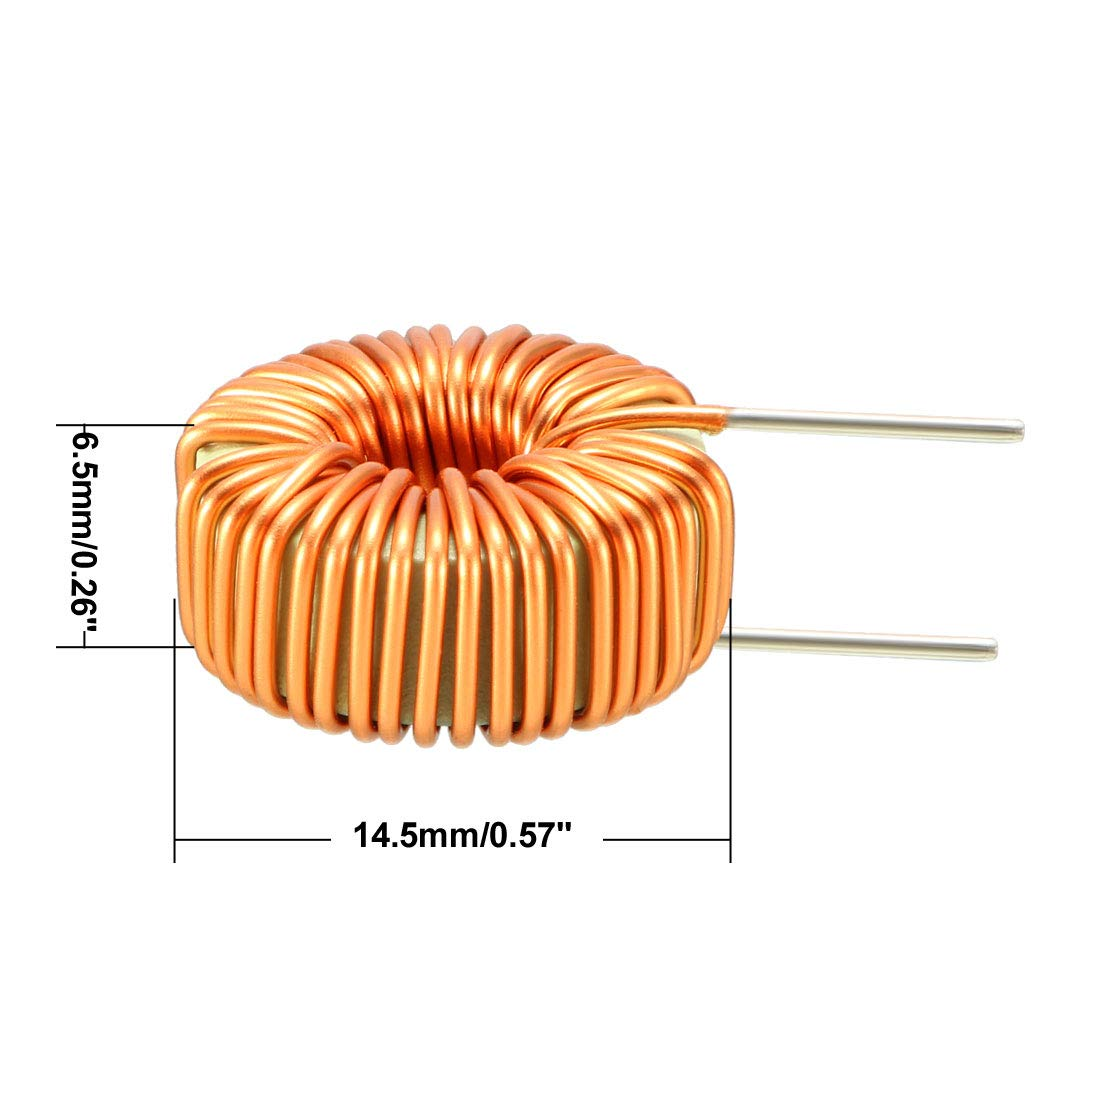 Uxcell 2pcs Toroid Magnetic Inductor Monolayer Wire Wind Wound 10mh Wiring Diagram Inductance Coil A18061100ux0035